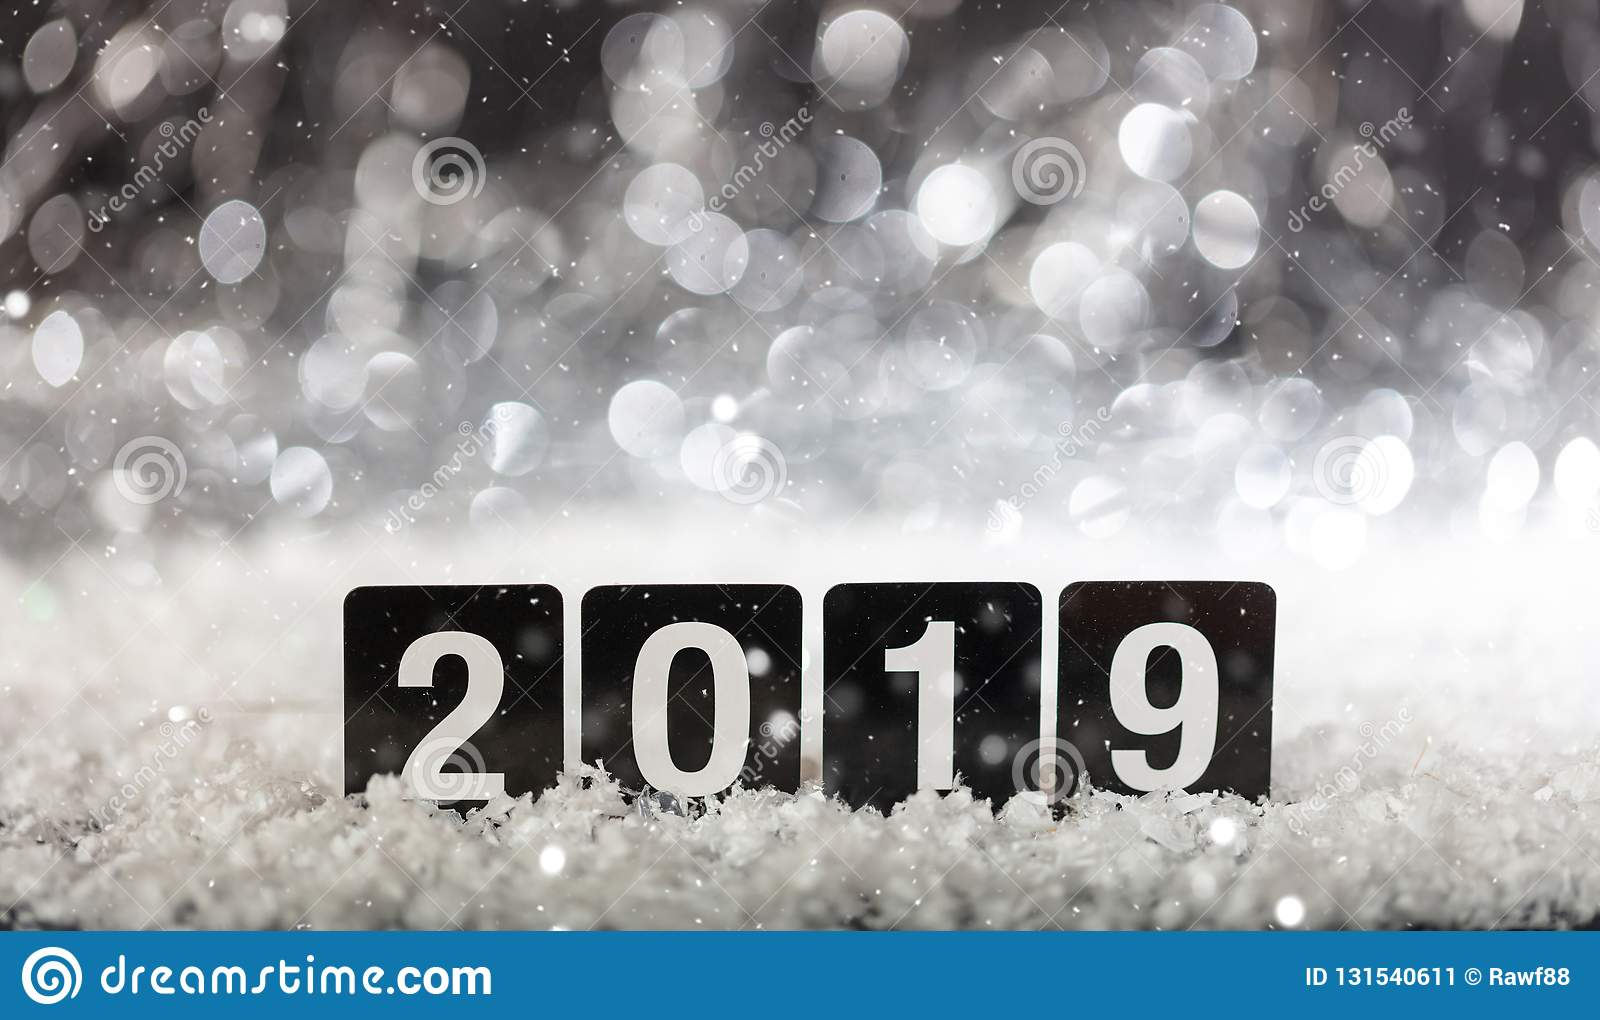 2019, new year on snow in the night